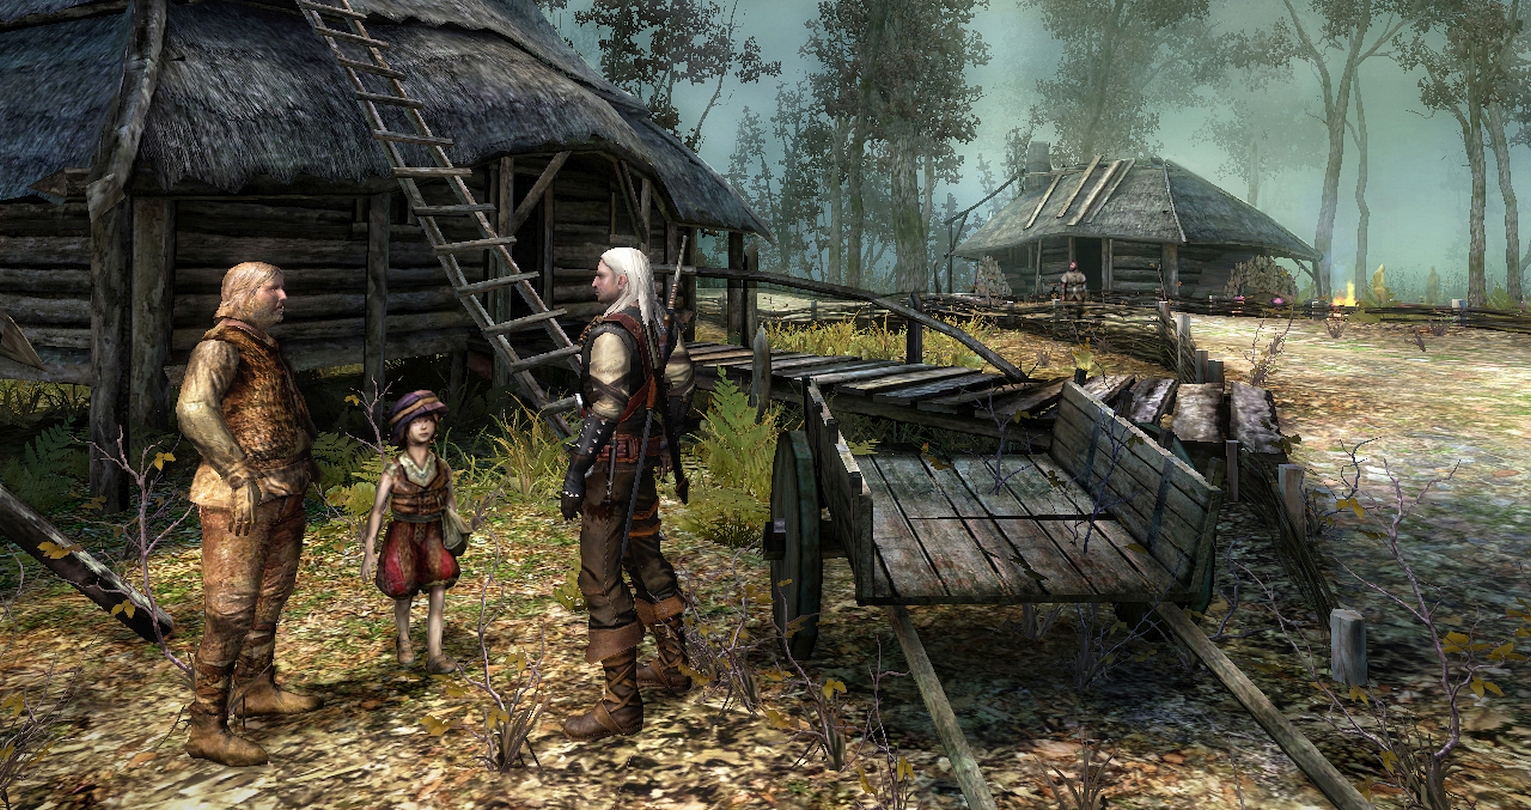 """""""Toss A Coin To Your Witcher"""" Cutscene Modded Into First The Witcher Game"""